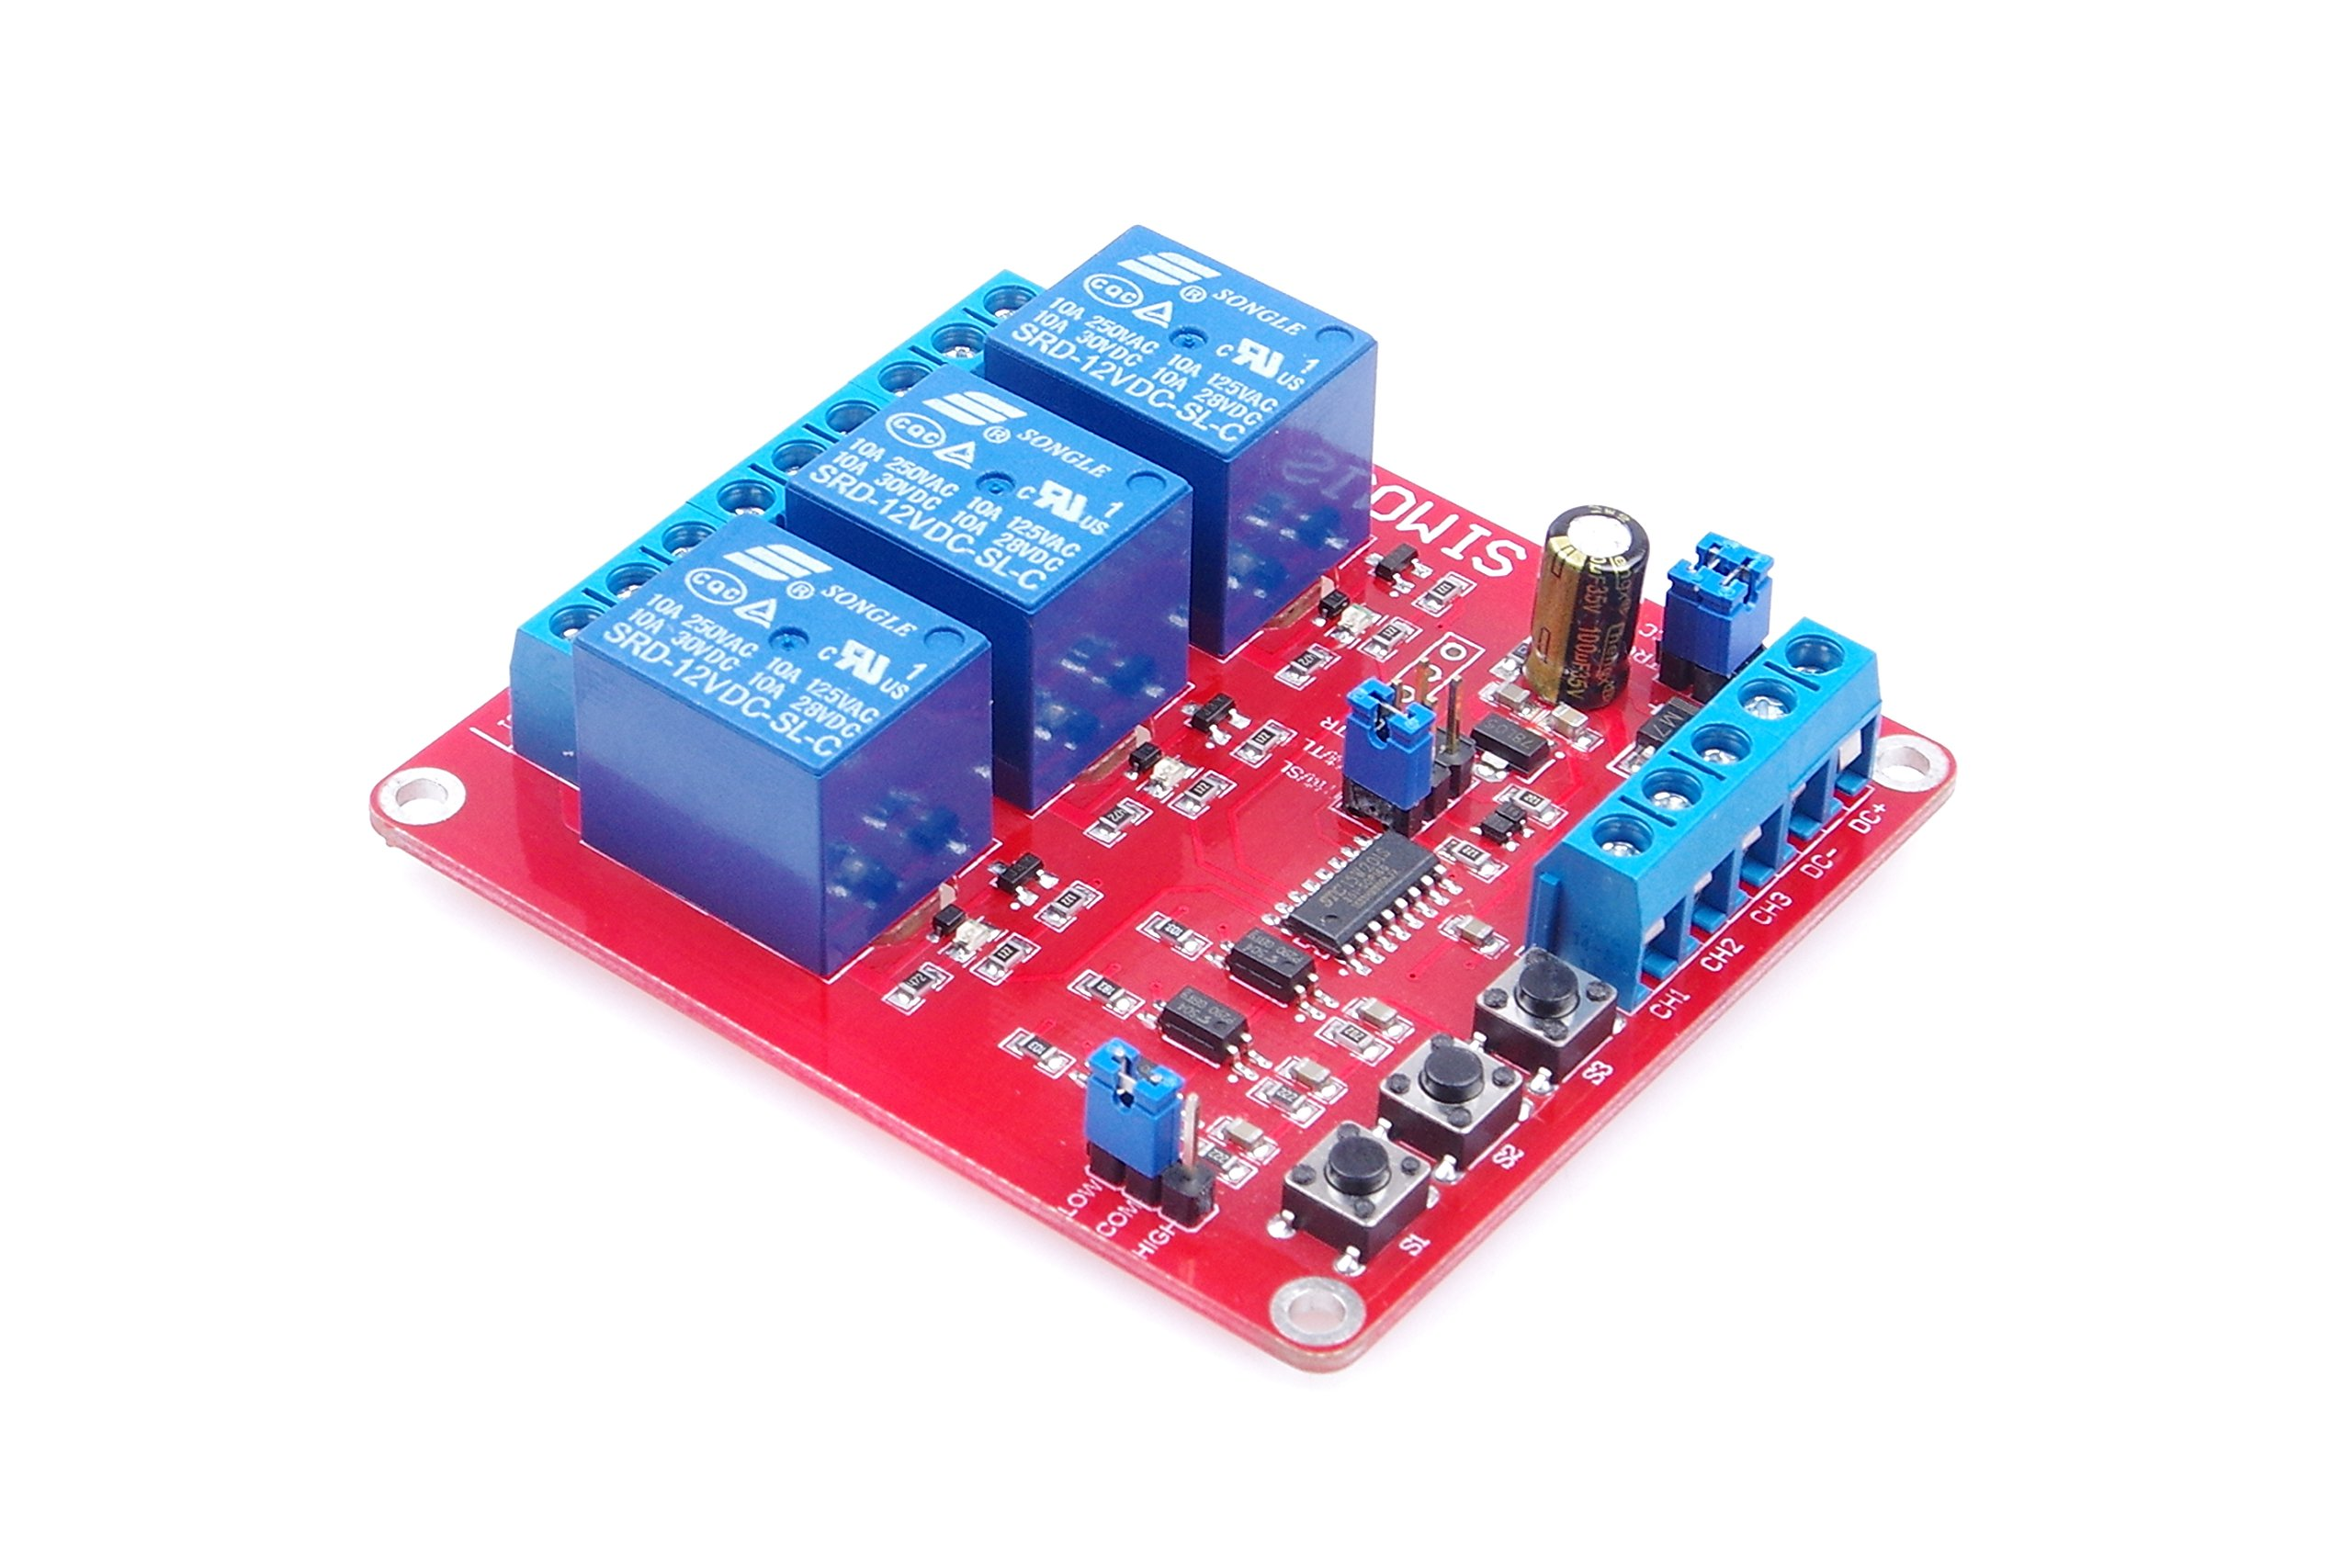 LM YN 3-Channel Relay Control Module Interlock Self-lock Trigger 3 in 1 Relay Module High - Low Level Trigger With Indicators for Household Appliances Control , PLC Industrial Control , Arduino (12V)